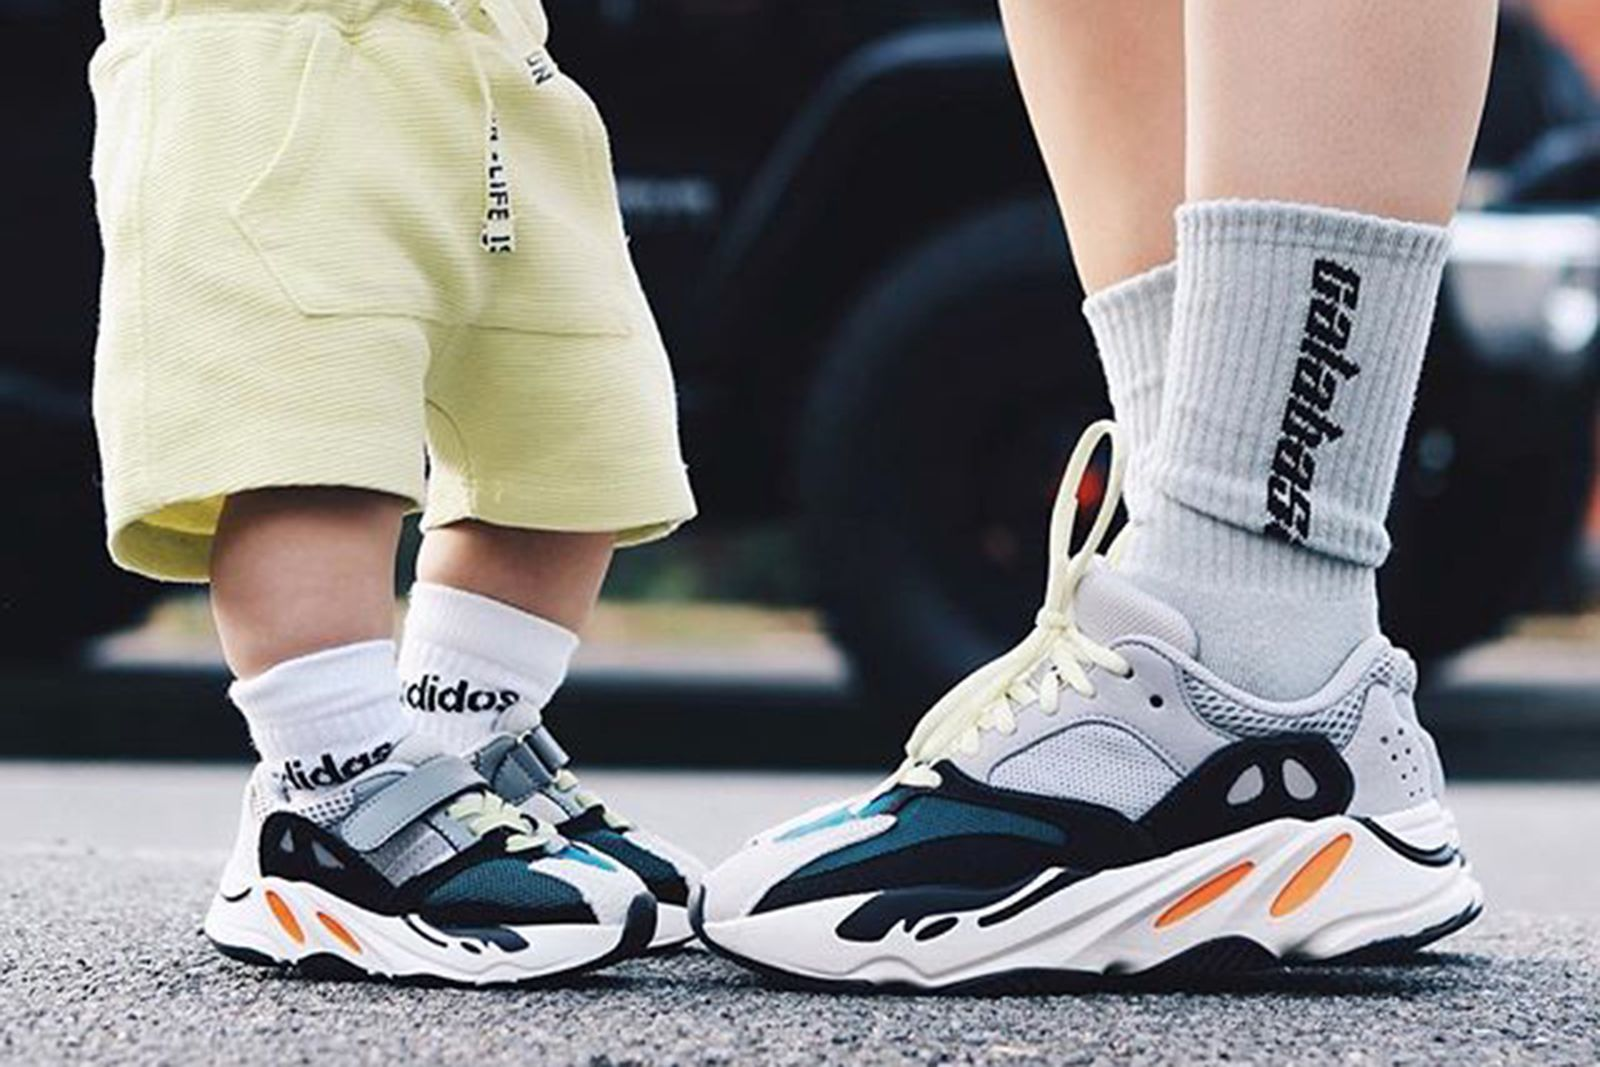 The Best Baby-Sized Sneakers To Cop For Your Kid